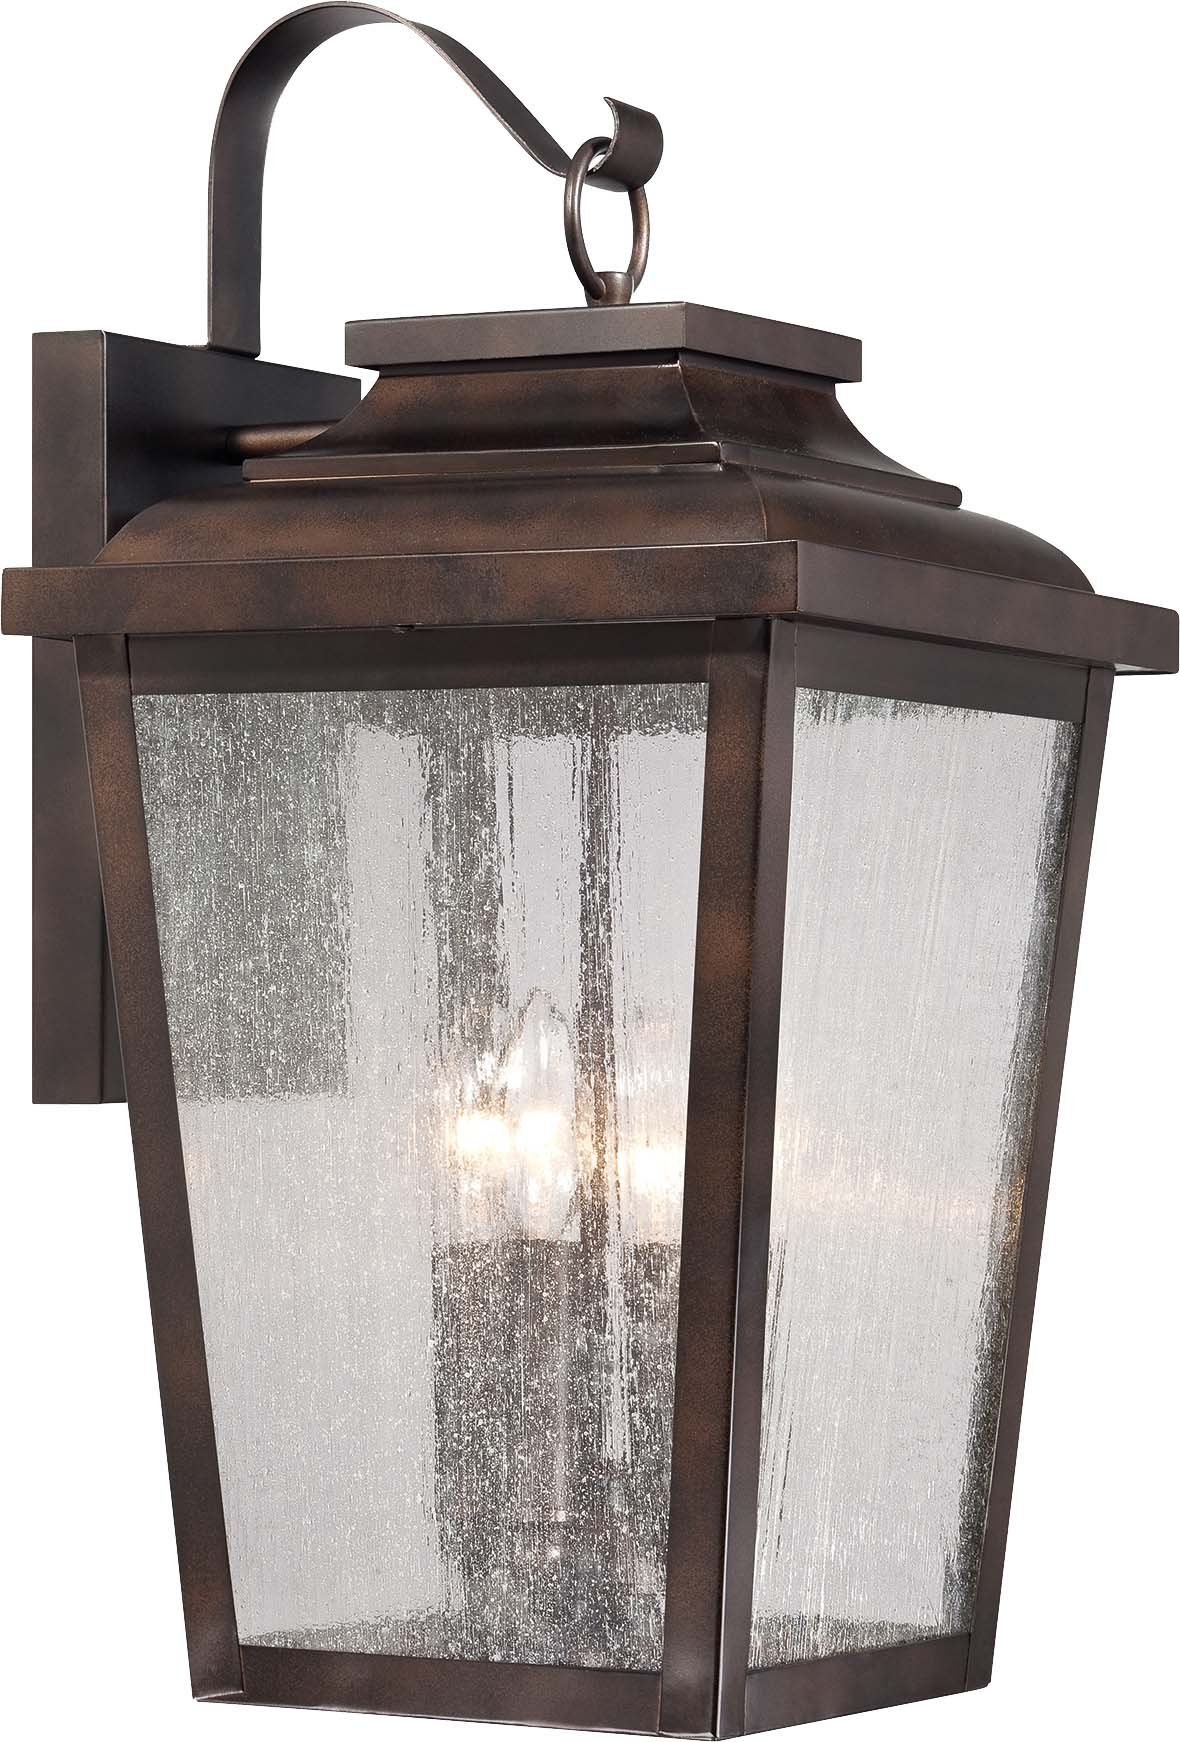 Minka Lavery 72173-189, Irvington Manor Aluminum Outdoor Wall Sconce Light, 300 Watts, Bronze with Clear Seeded Glass